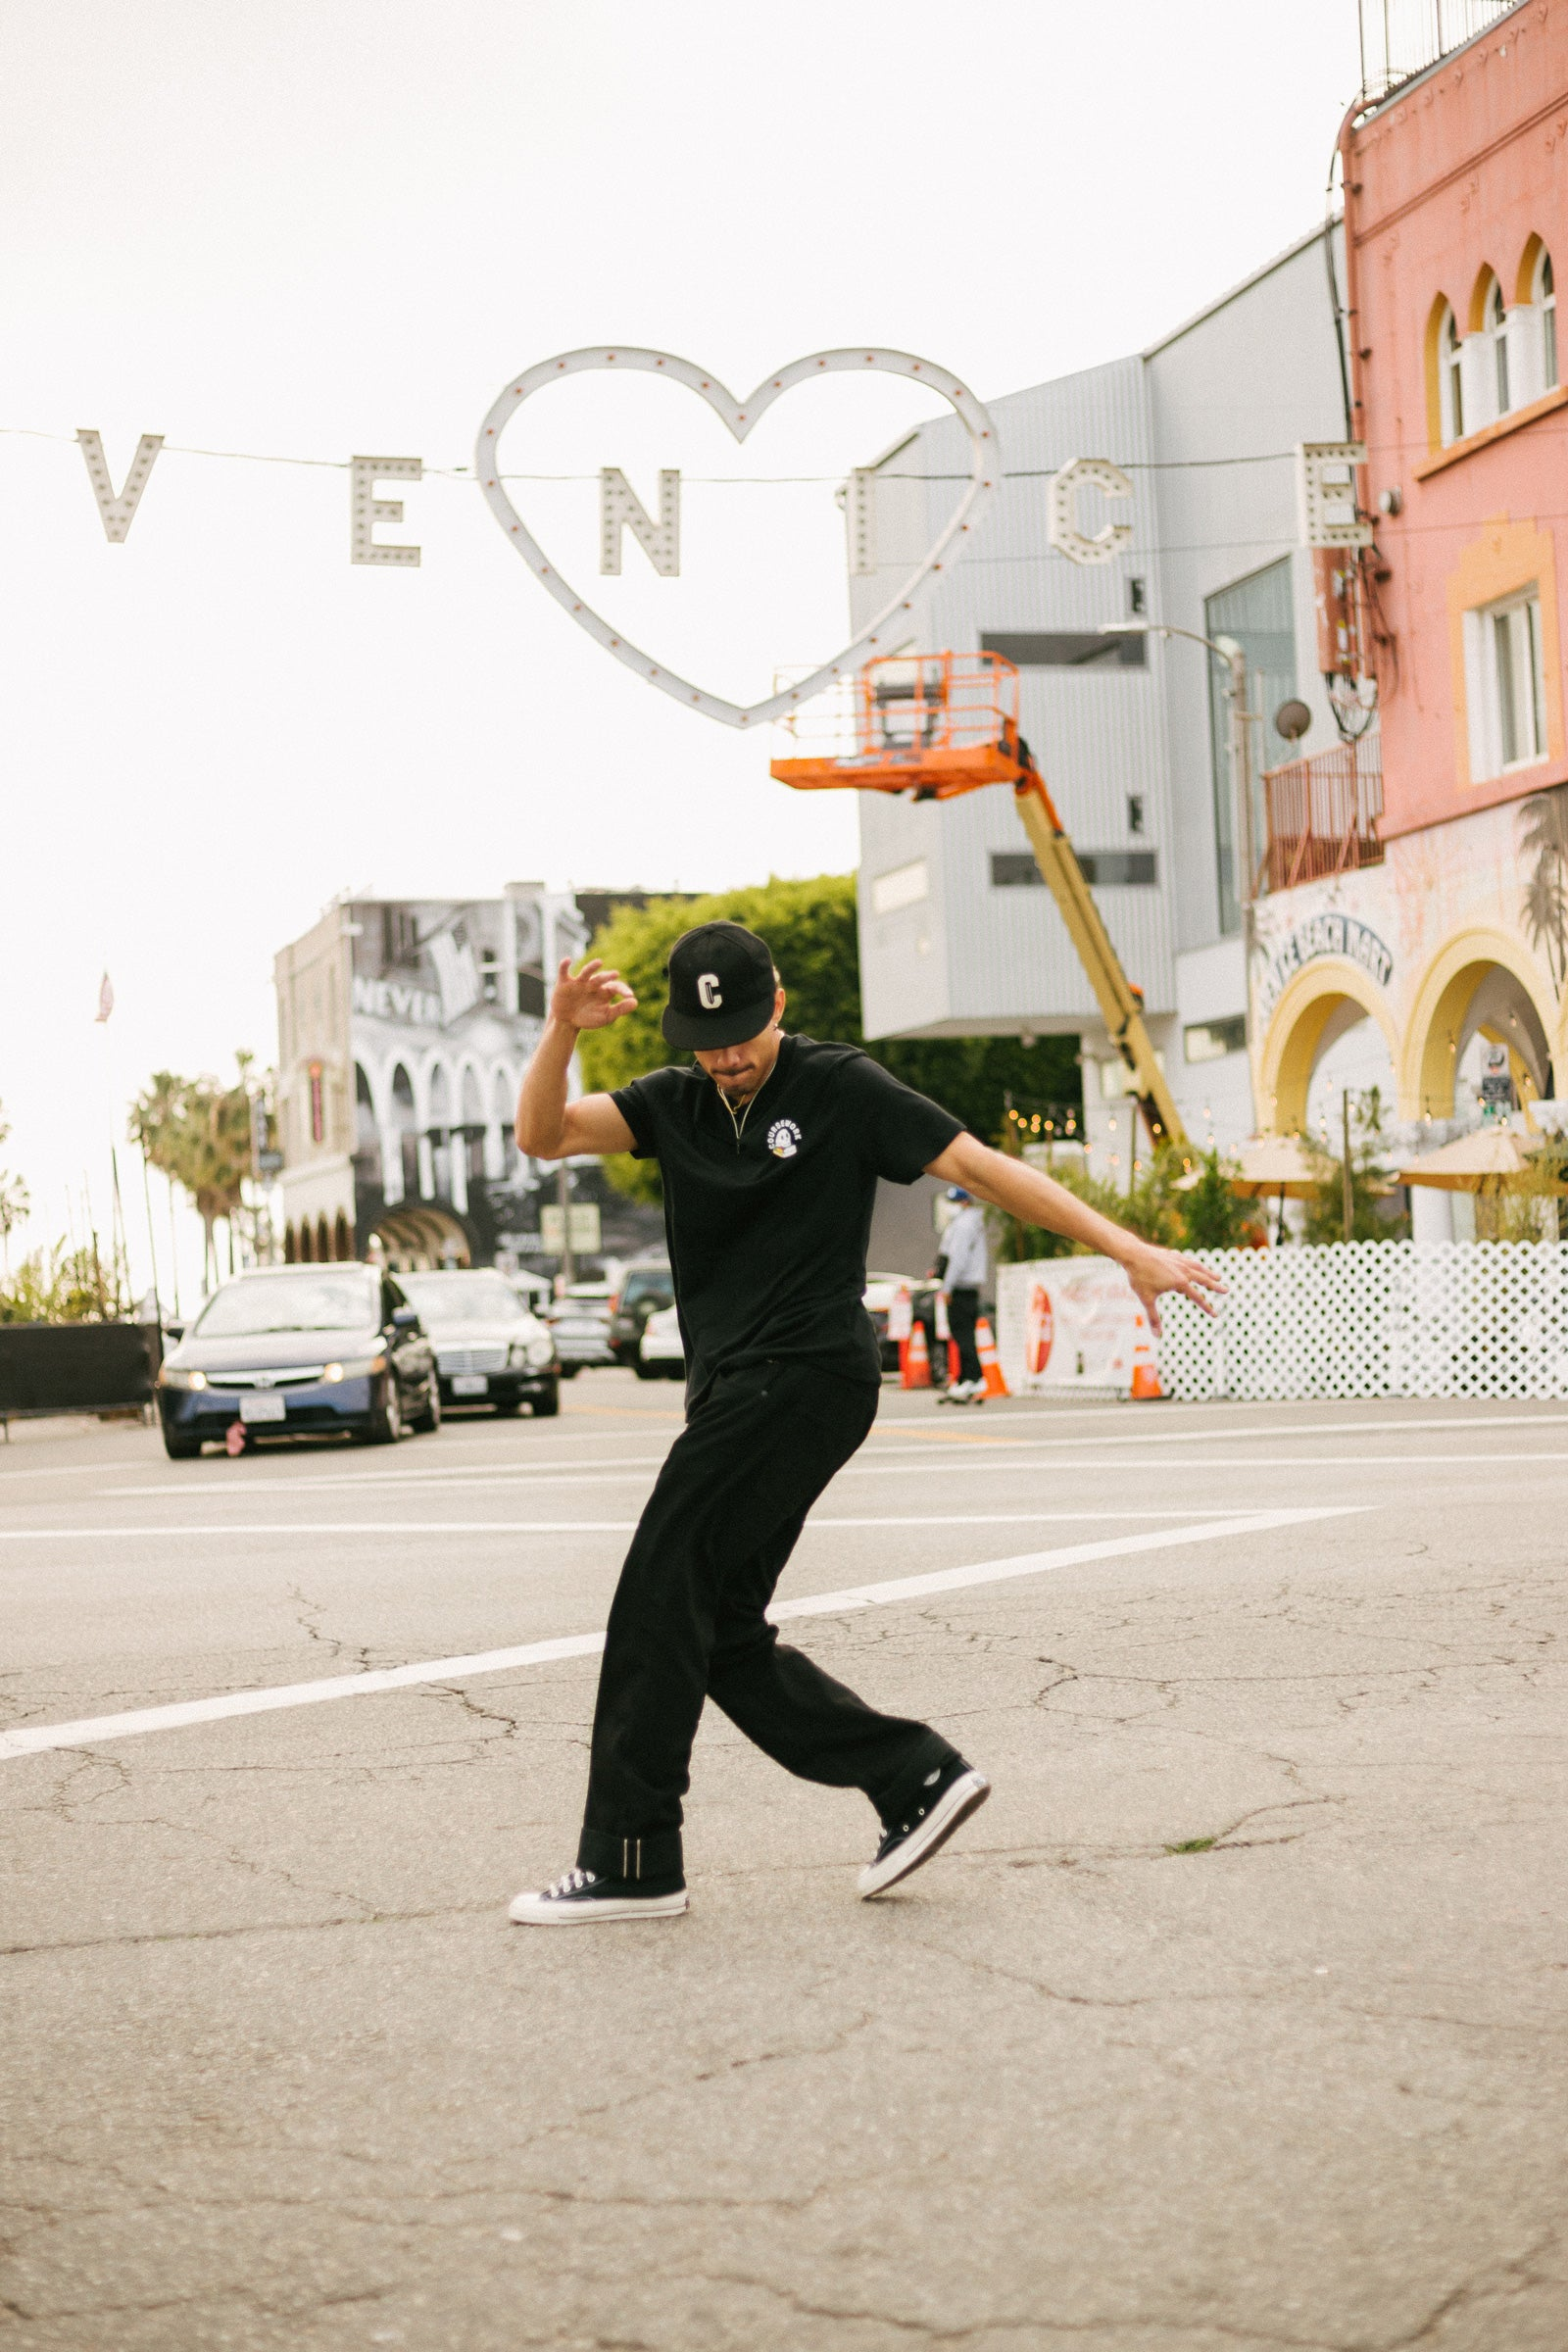 Model wearing the Ebbets Wool C Cap in black and the Required Reading Tee in black while breakdancing in the street.